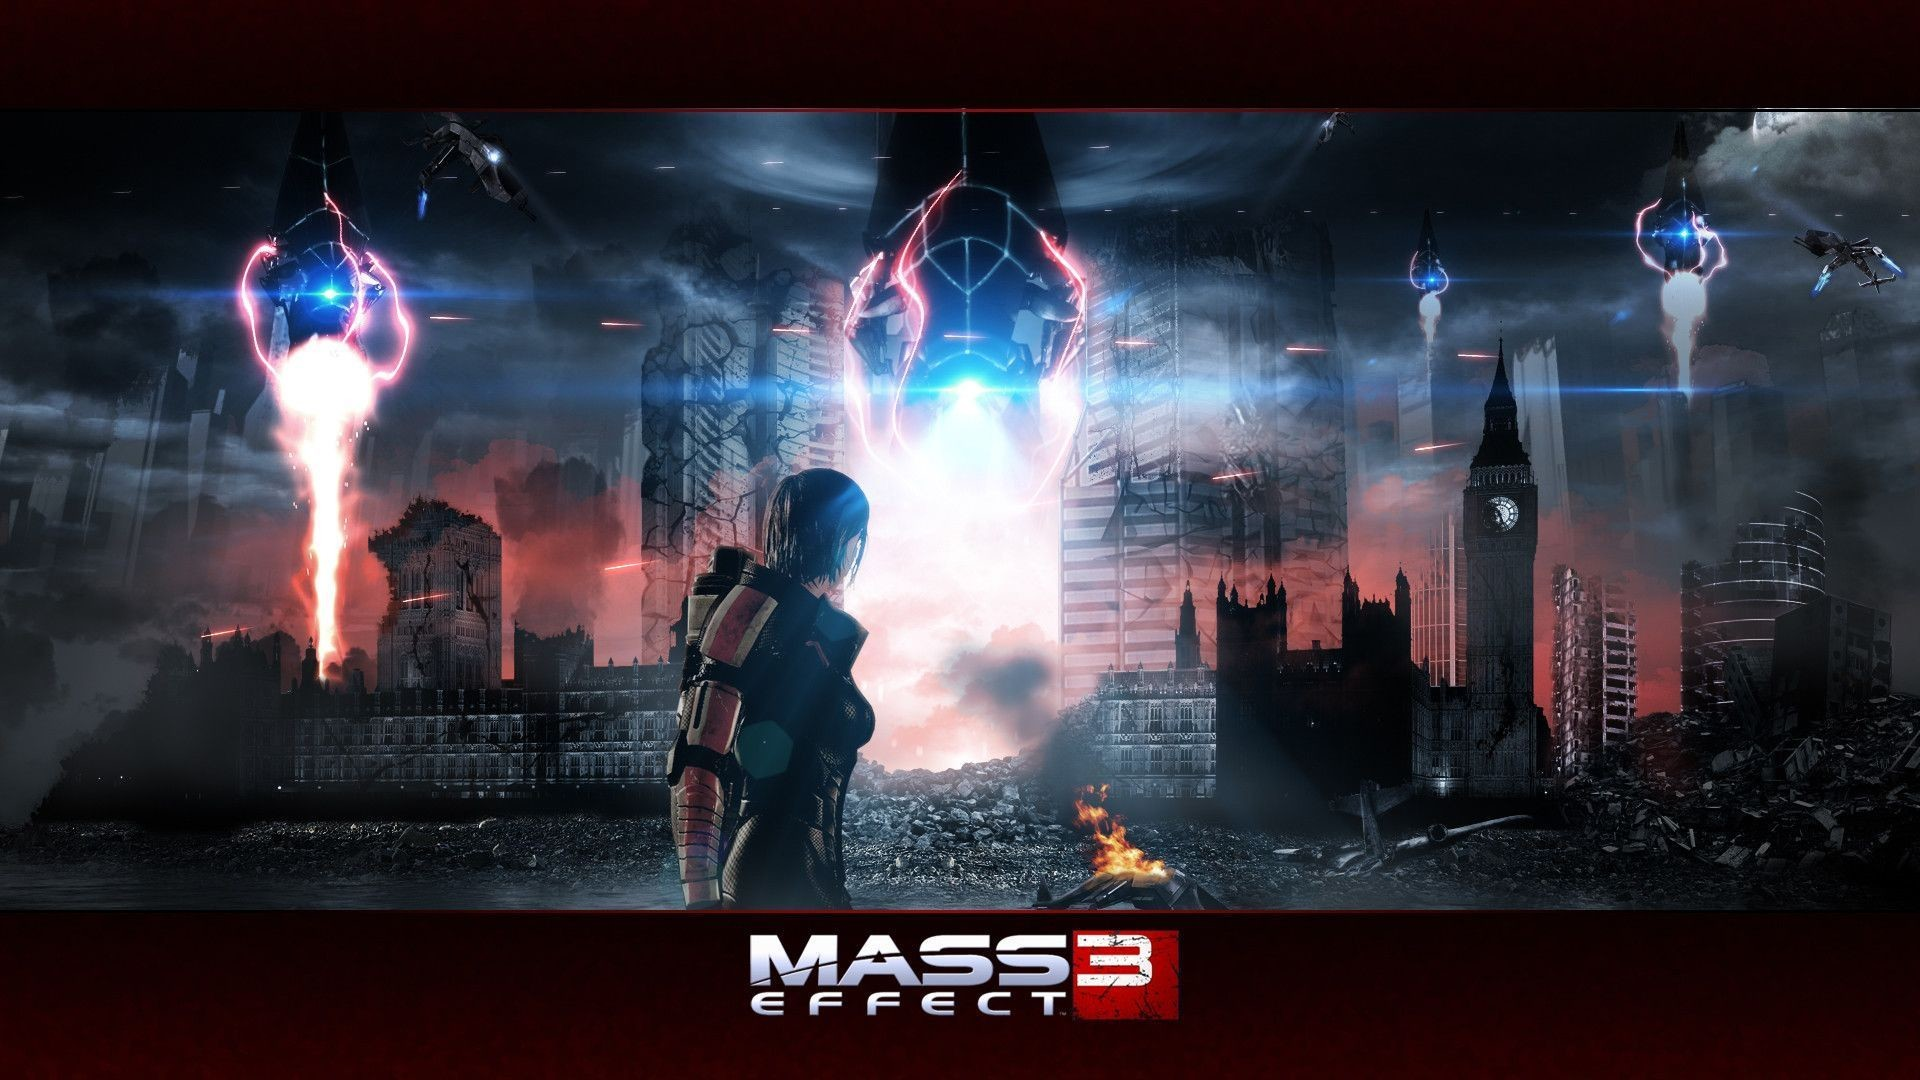 Mass Effect Reapers Wallpapers – Wallpaper Cave